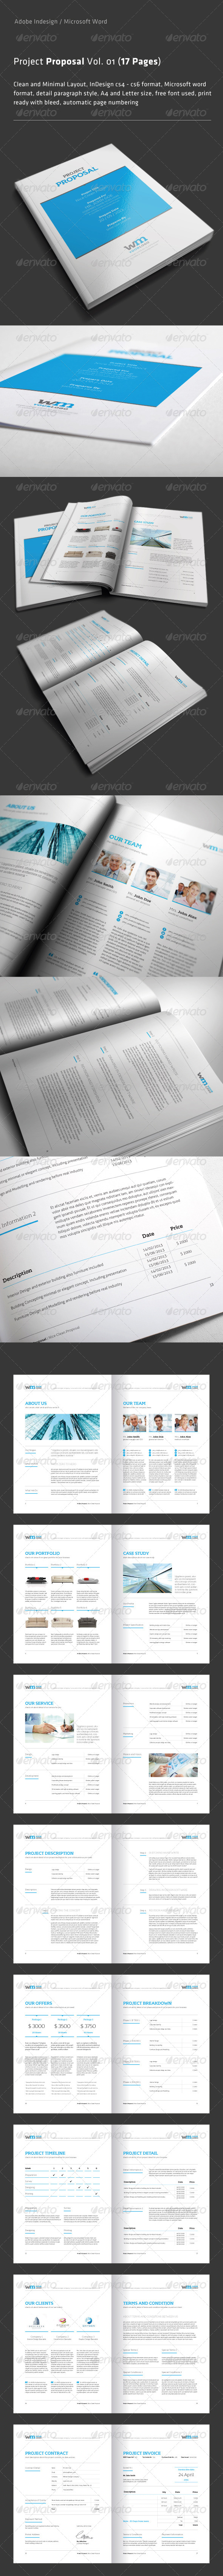 GraphicRiver Proposal Template Vol 01 17 Pages 4766259